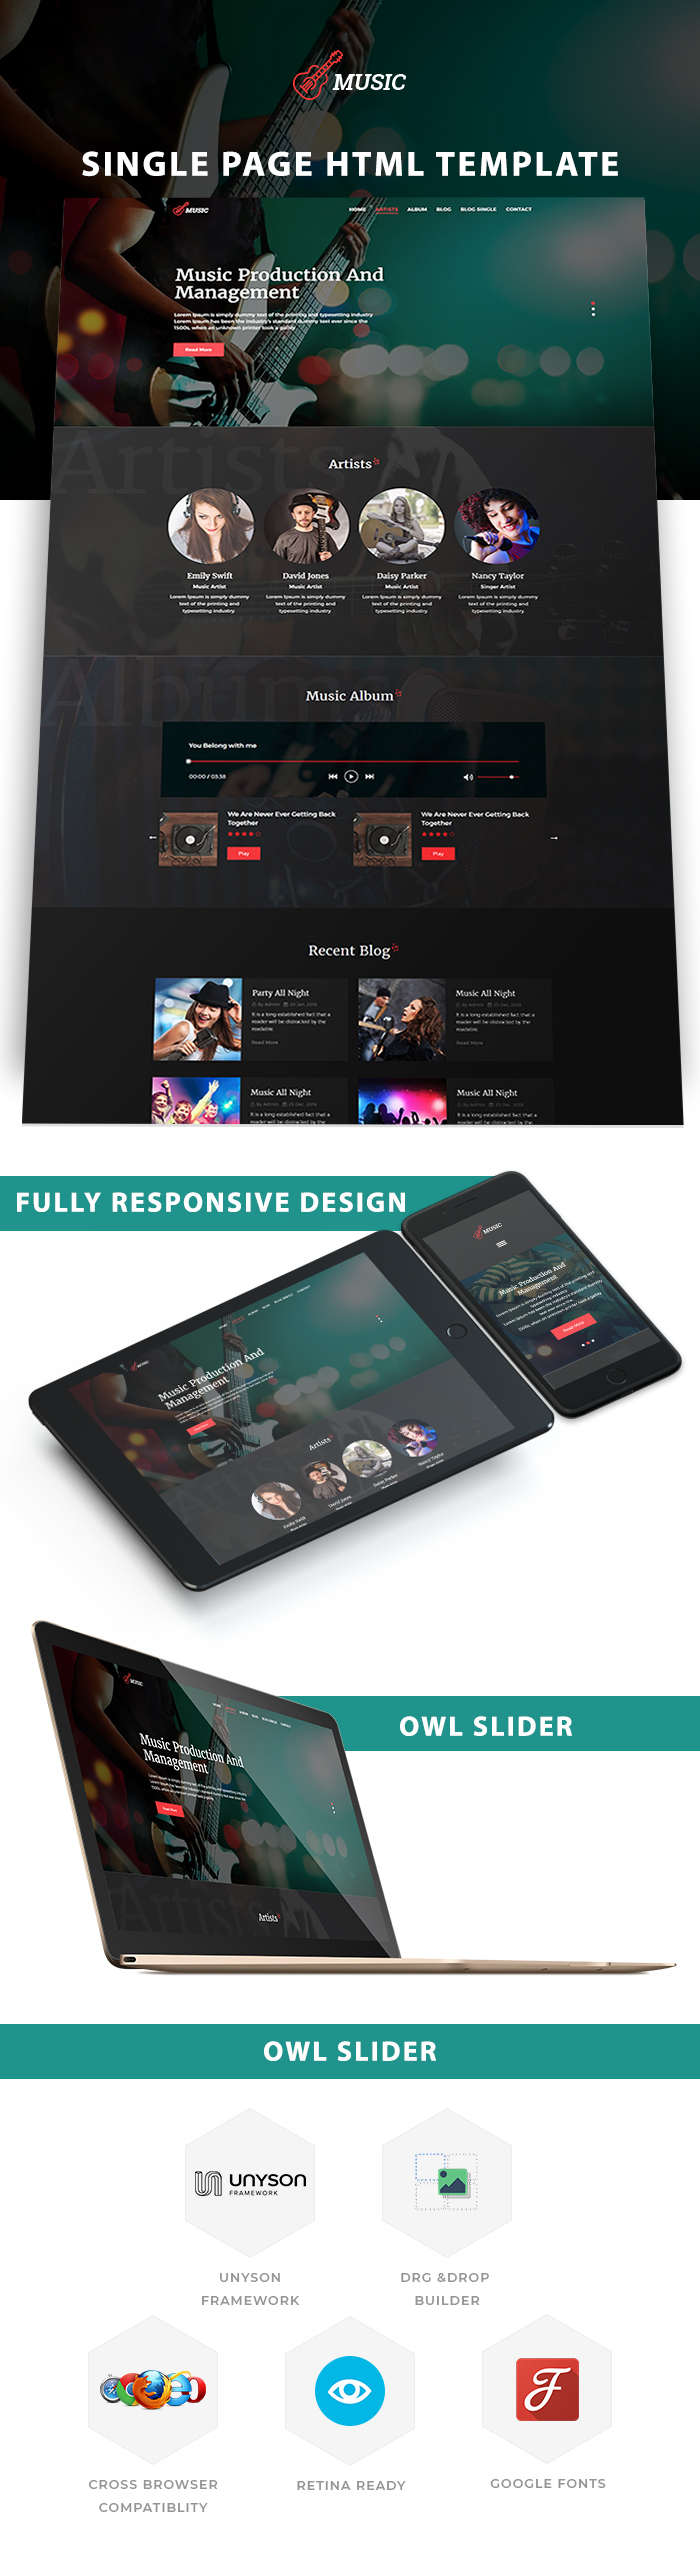 Music Production Agency HTML Website Templates